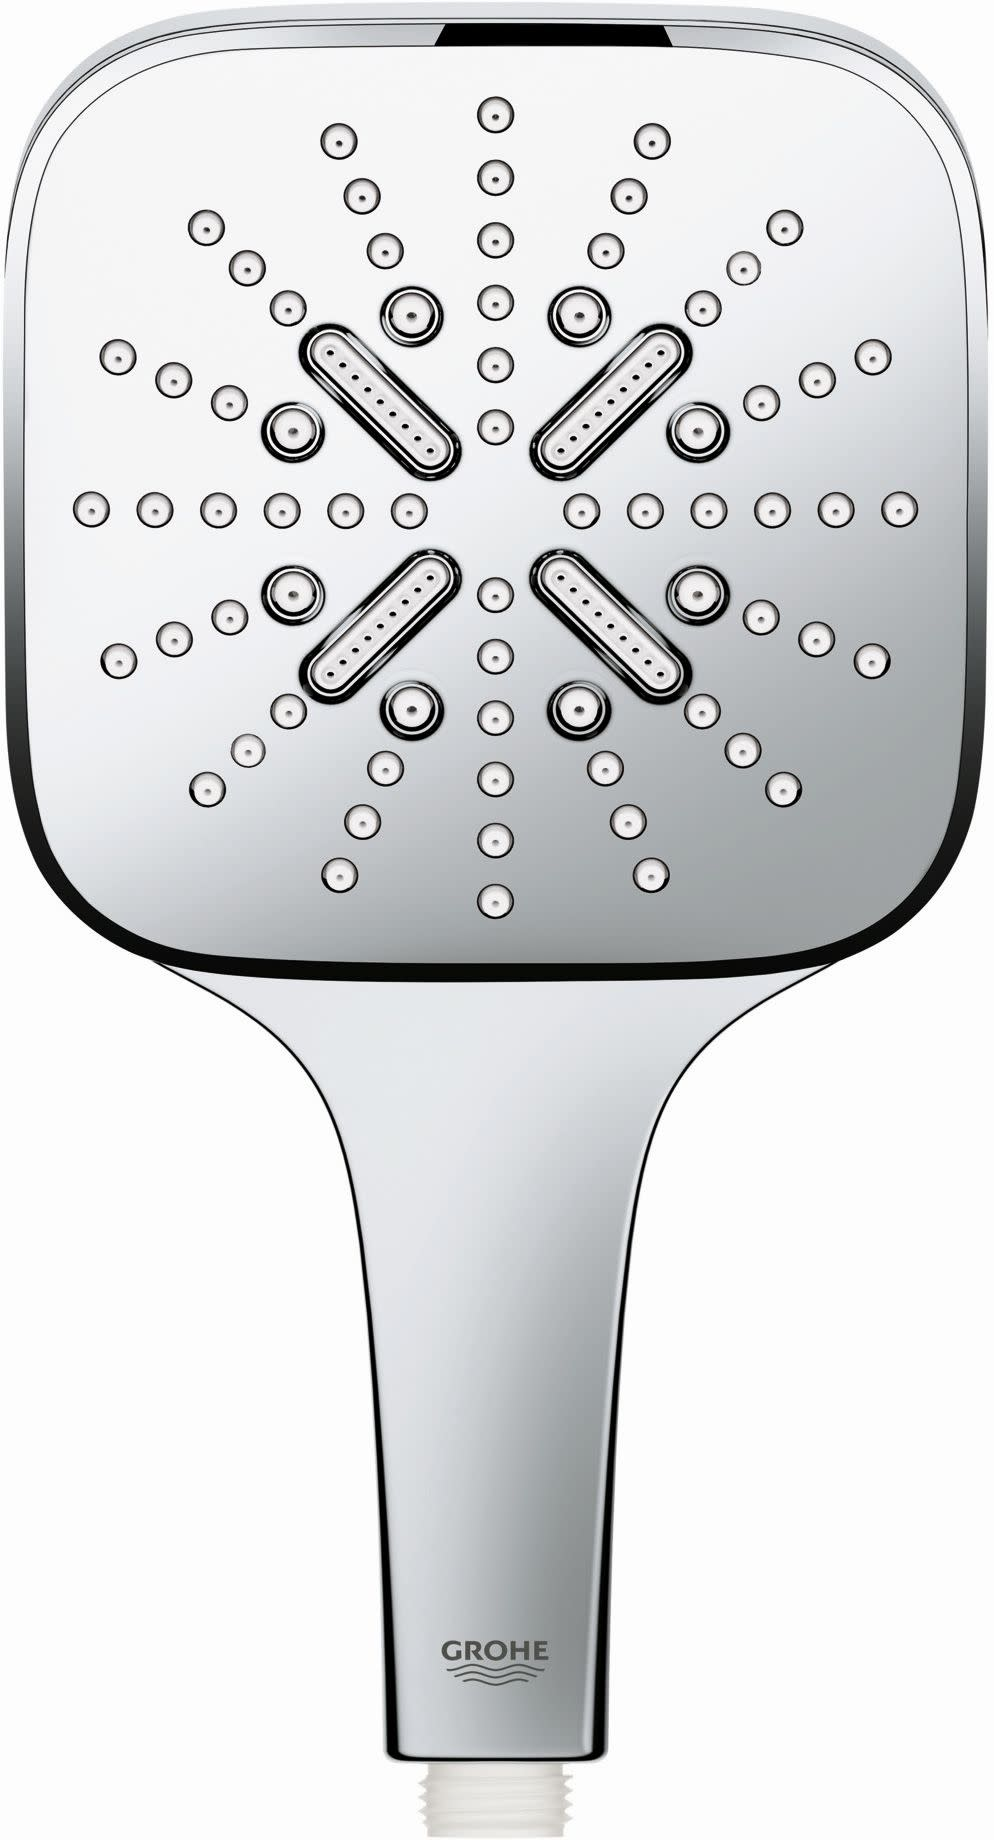 Grohe 26 552 Cube 1.75 GPM Multi Function Hand Shower - Chro